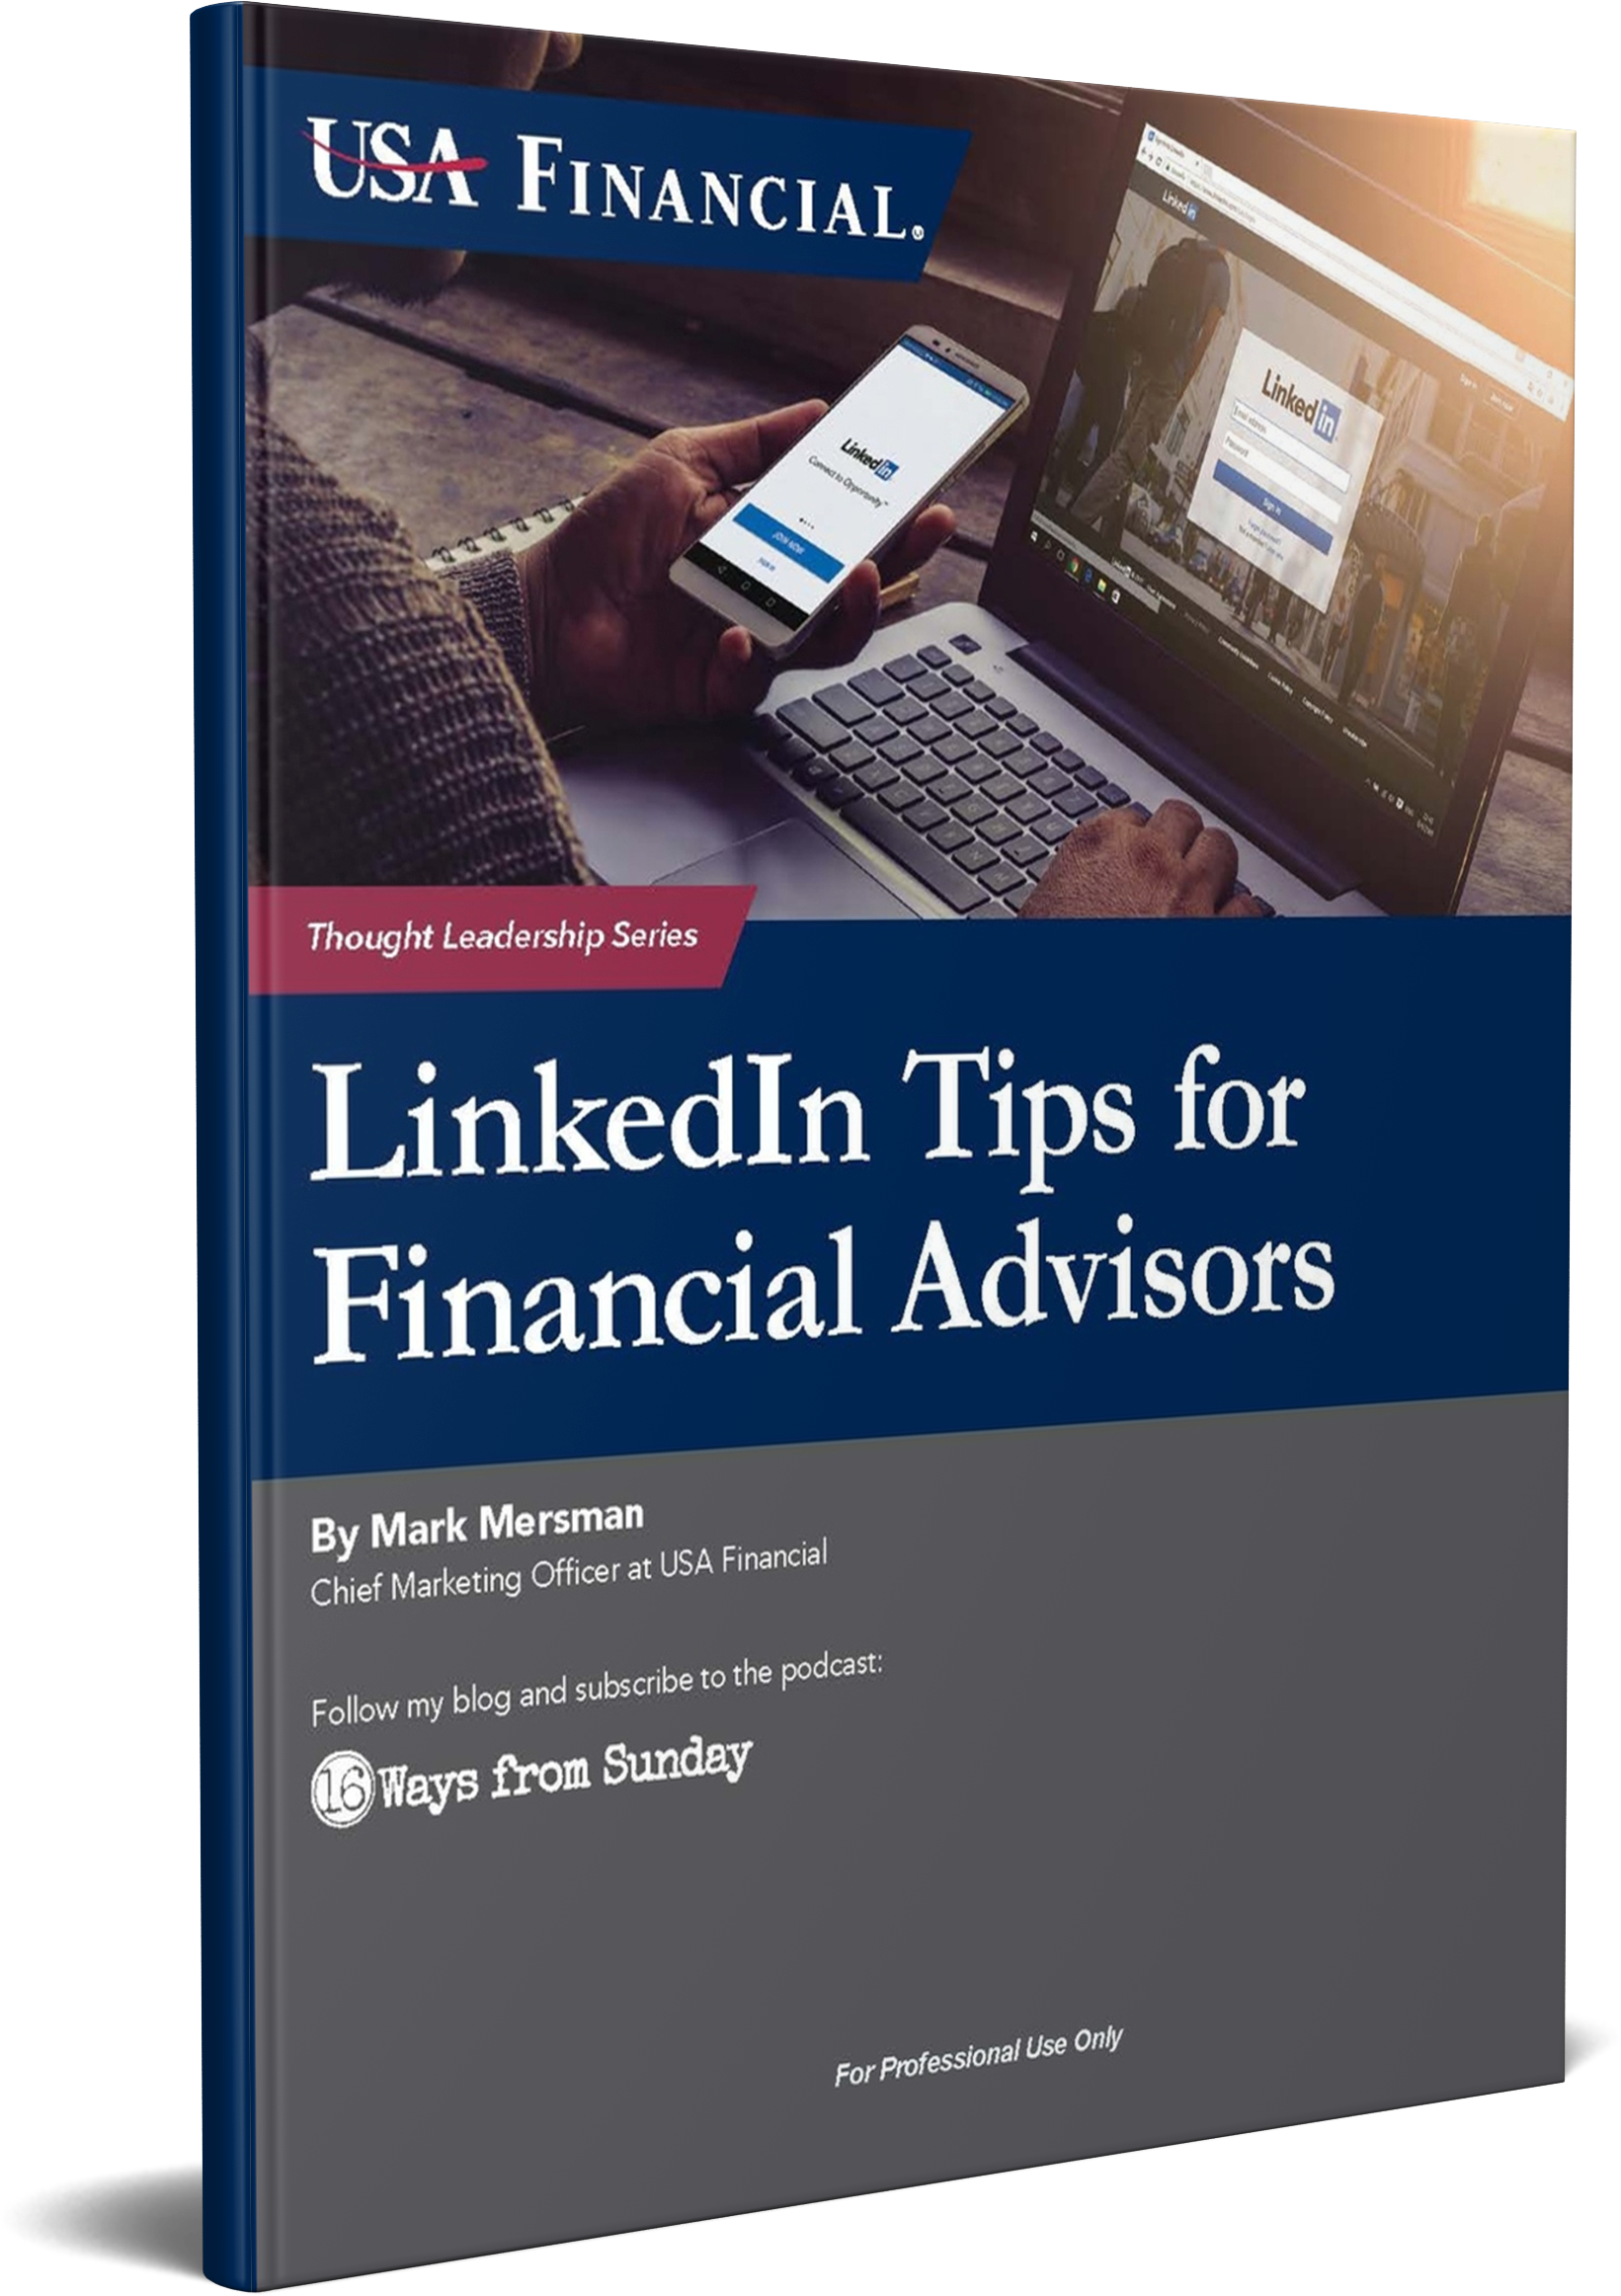 LinkedIn Tips for Financial Advisors